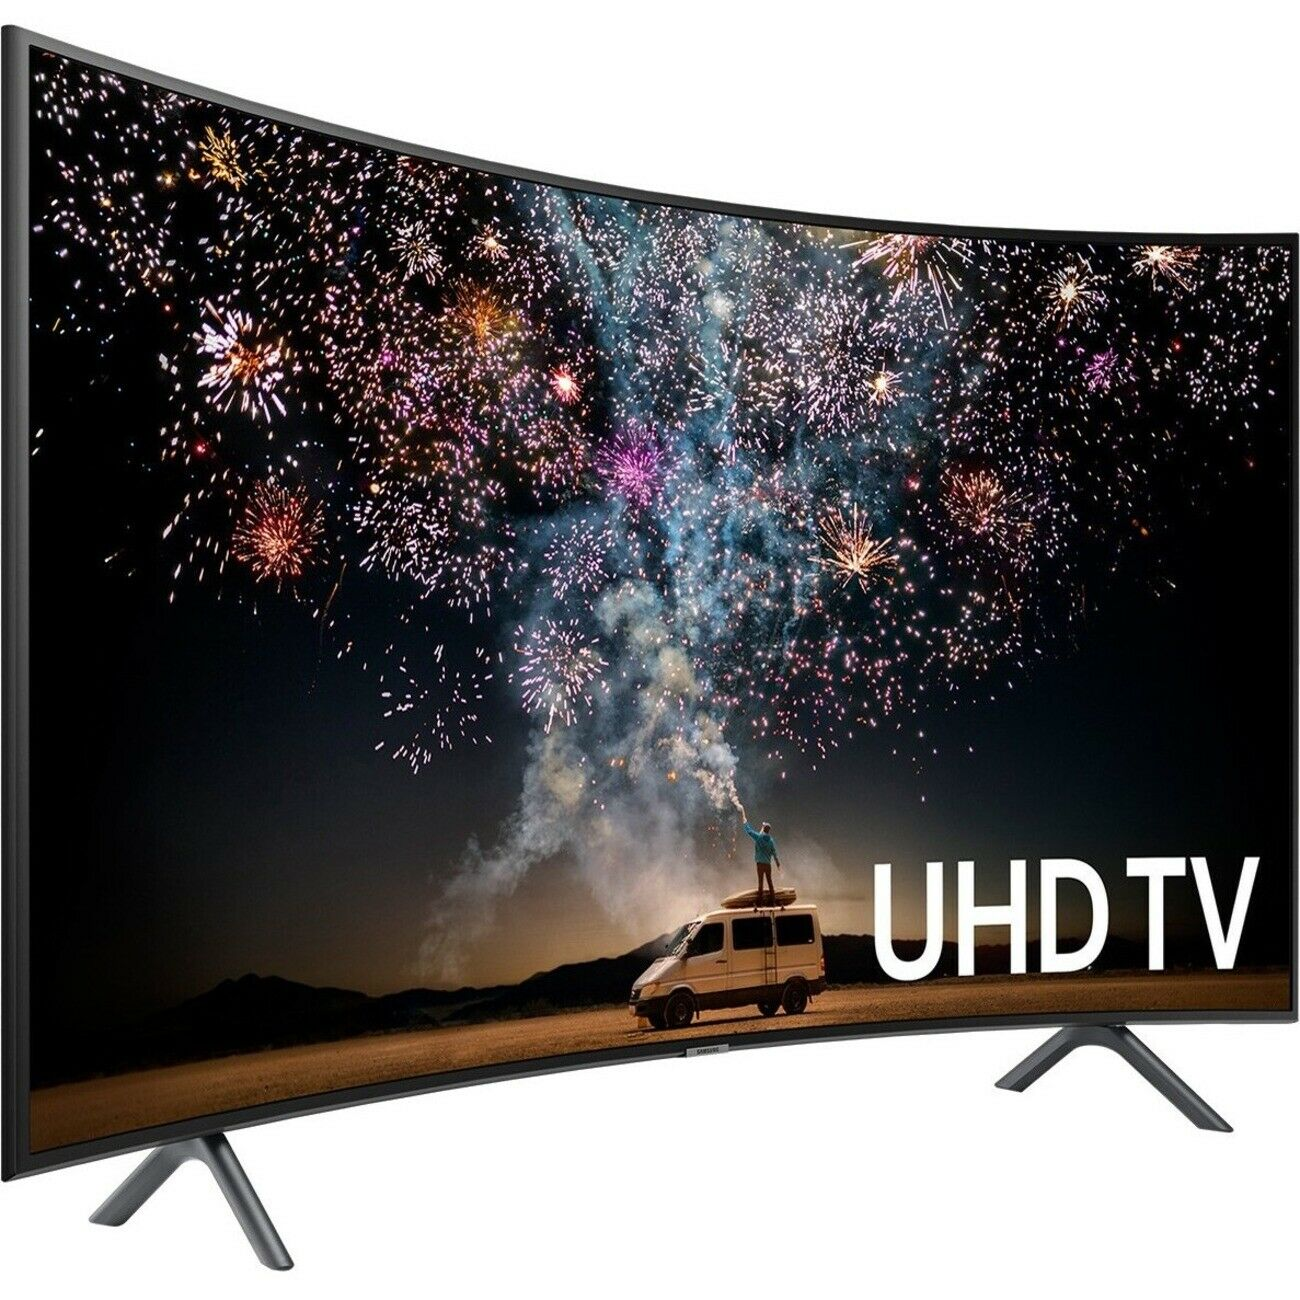 Samsung UN65RU7300F 65-inch 4K UHD HDR LED Smart Curved TV UN65RU7300FXZA 4K. Buy it now for 680.97